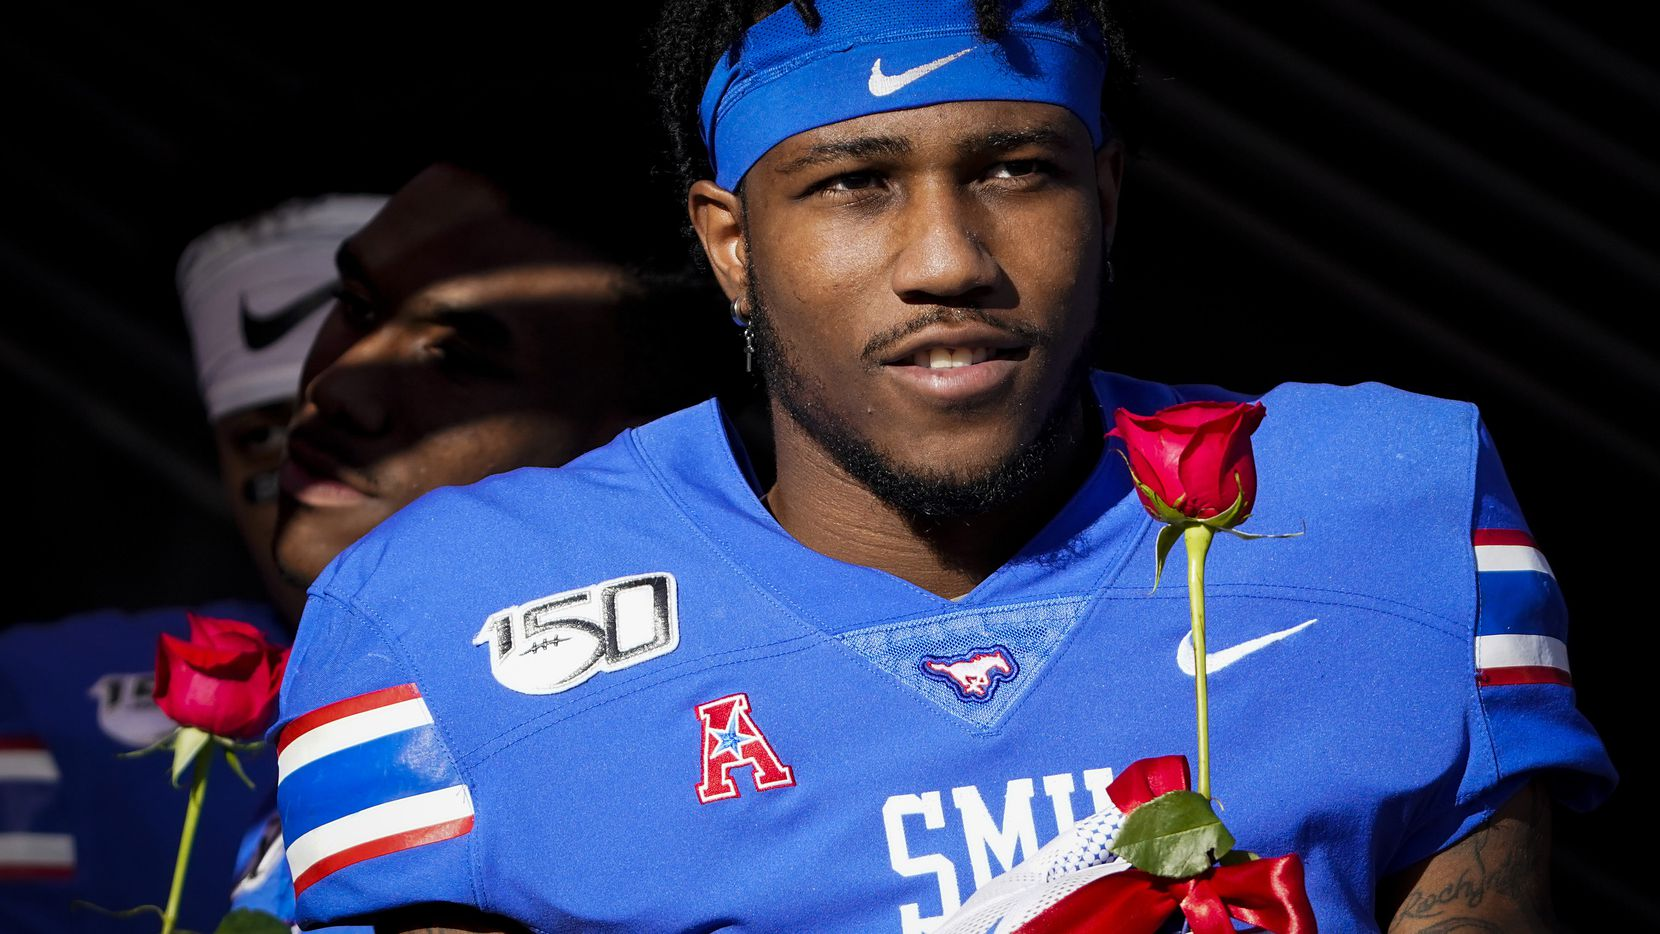 SMU cornerback Robert Hayes Jr. carries a rose onto the field during senior day activities before an NCAA football game against Tulane at Ford Stadium on Saturday, Nov. 30, 2019, in Dallas.